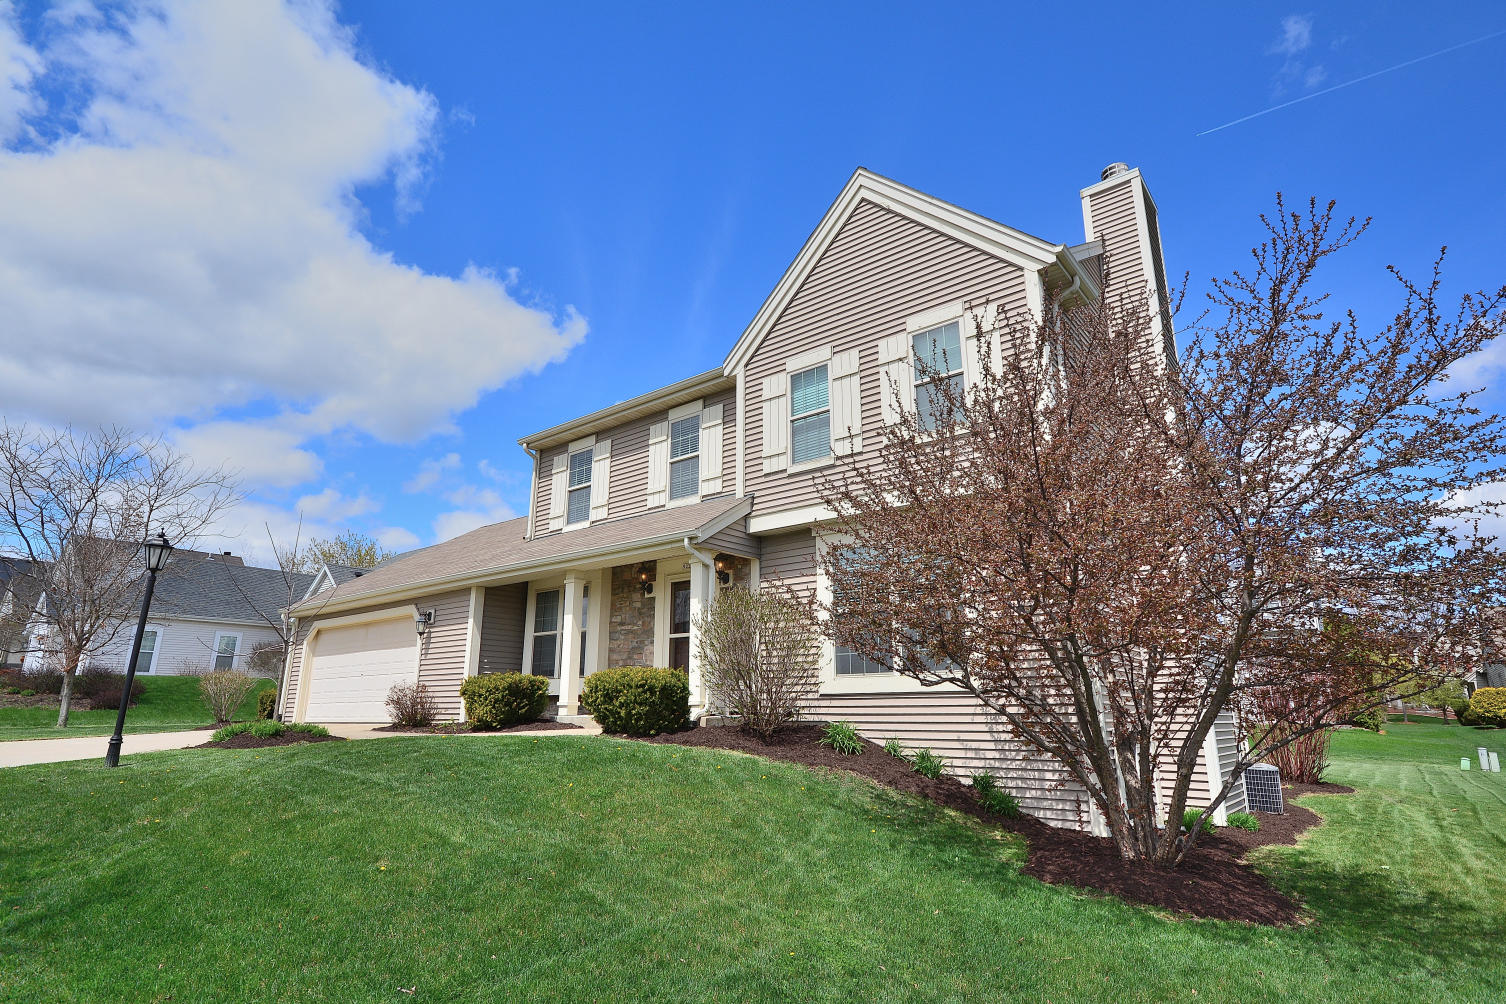 922 River Hill Dr, Waukesha, Wisconsin 53189, 4 Bedrooms Bedrooms, 8 Rooms Rooms,2 BathroomsBathrooms,Single-Family,For Sale,River Hill Dr,1634695